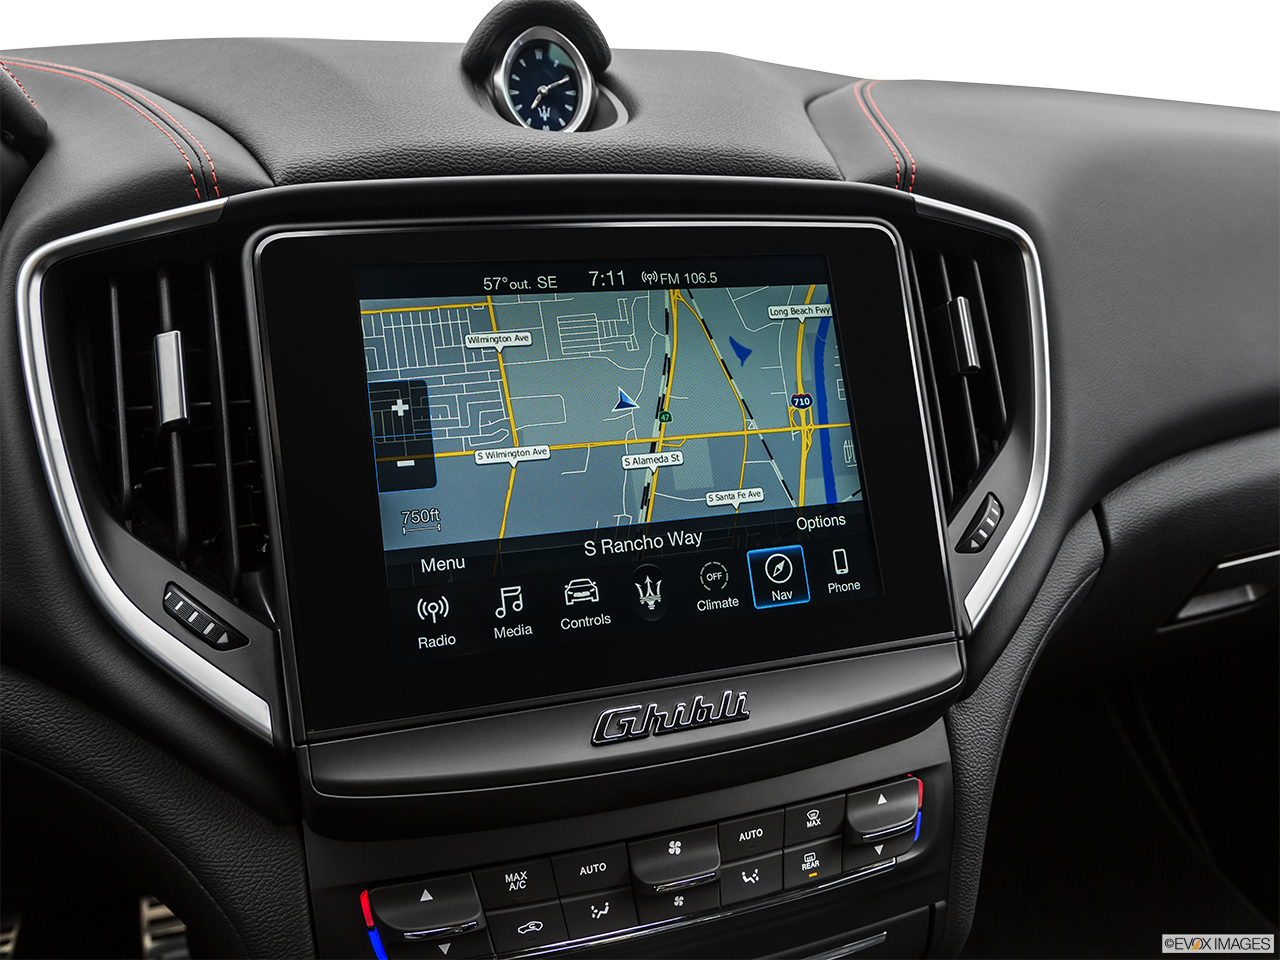 2020 Maserati Ghibli S Gransport Driver position view of navigation system.